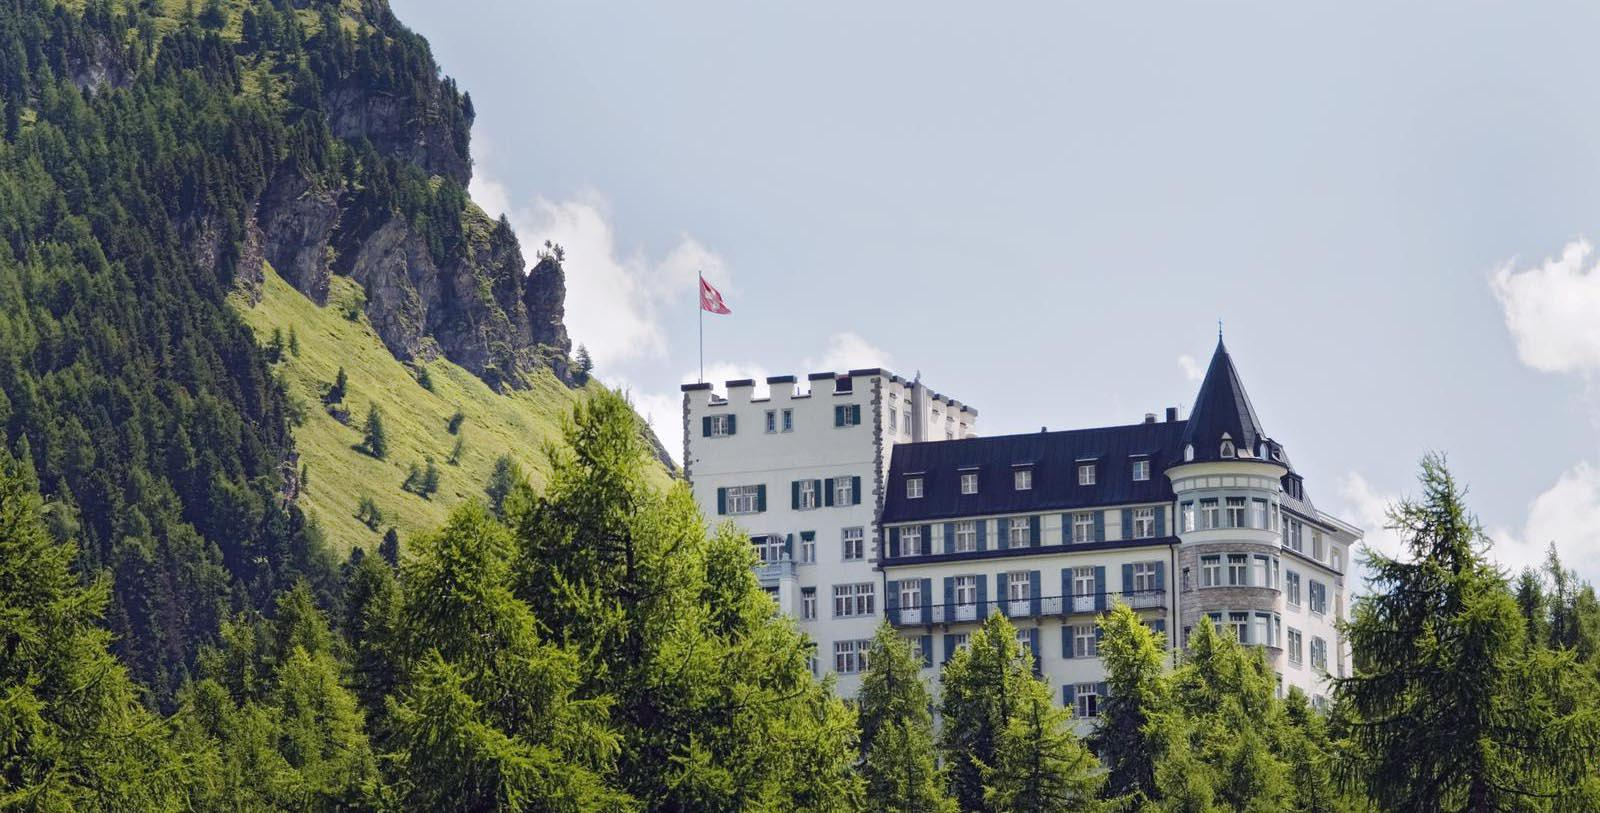 Image of Hotel Exterior Hotel Waldhaus Sils, 1908, Member of Historic Hotels Worldwide, in Sils Maria, Switzerland, Special Offers, Discounted Rates, Families, Romantic Escape, Honeymoons, Anniversaries, Reunions